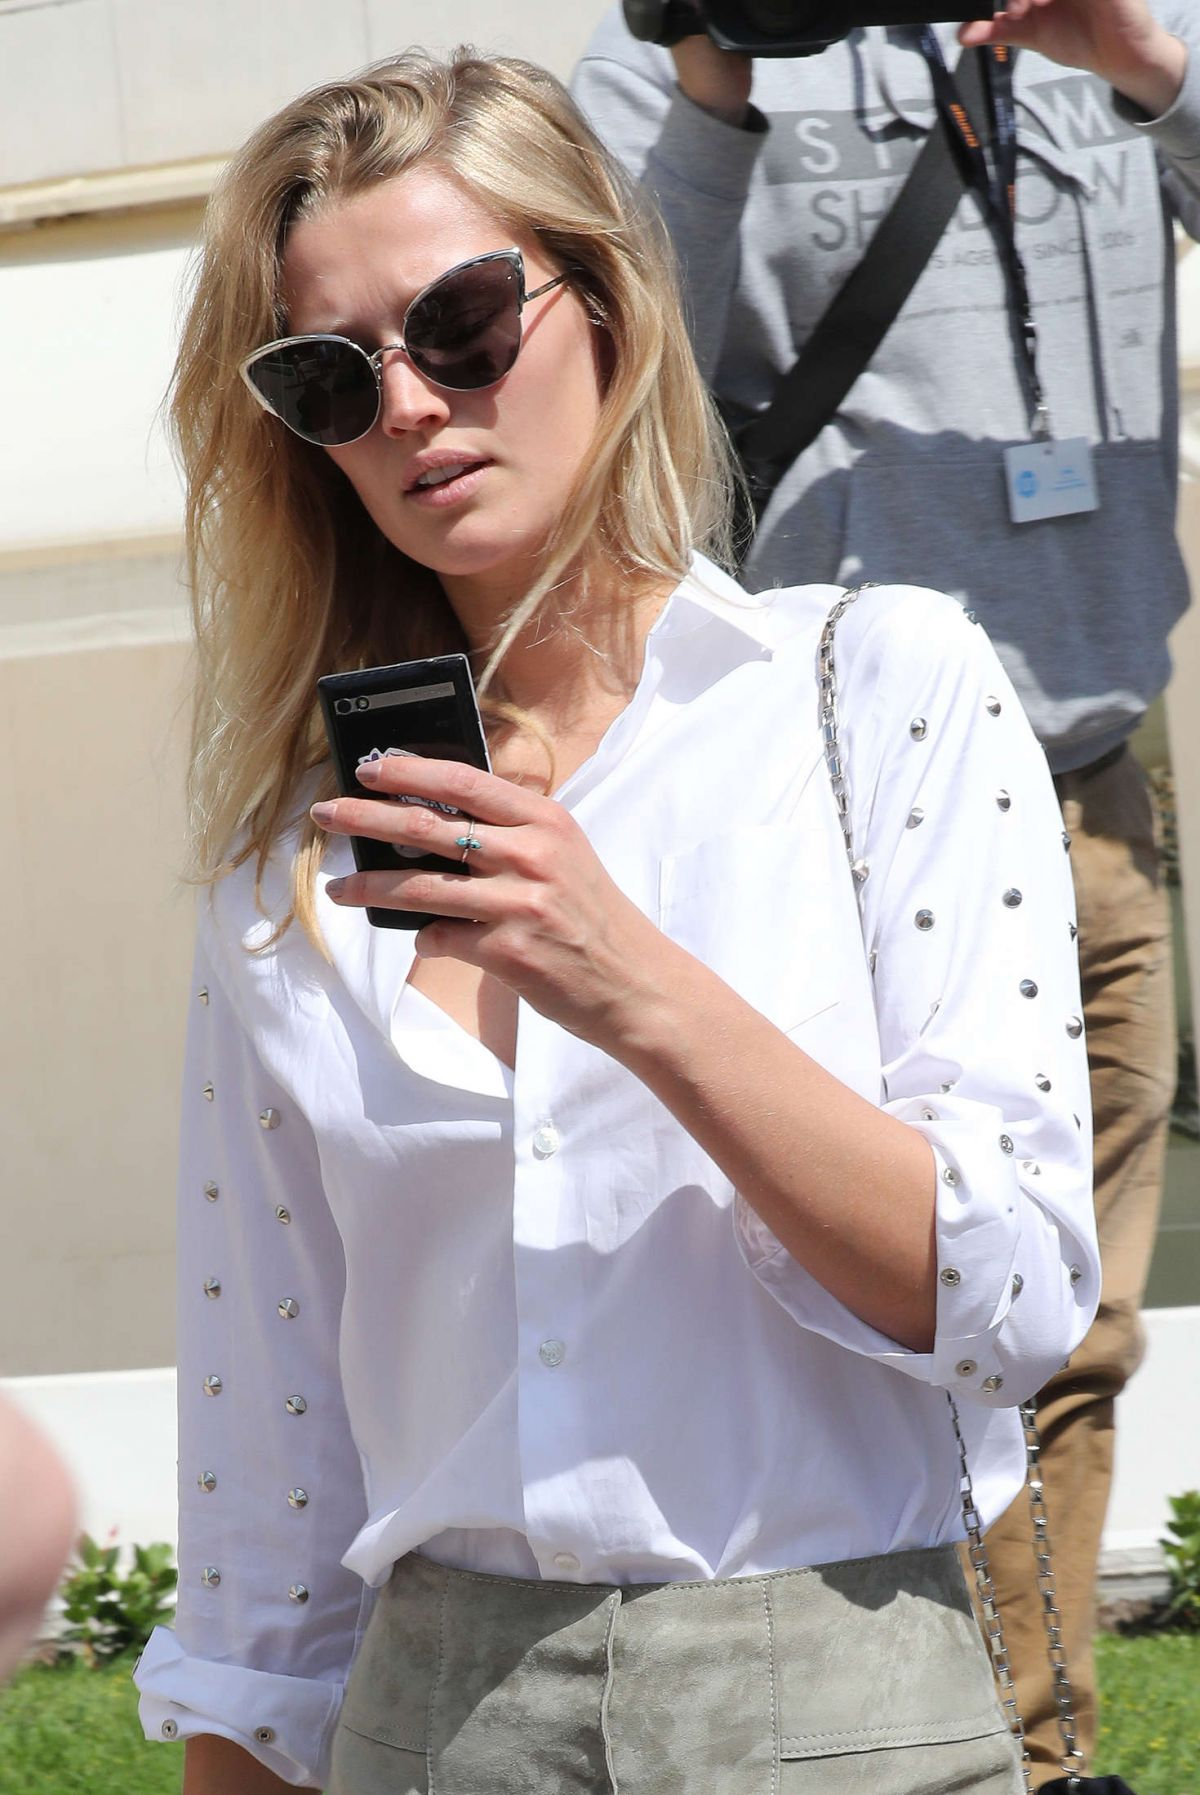 TONI GARRN Out and About in Cannes 05/16/2016